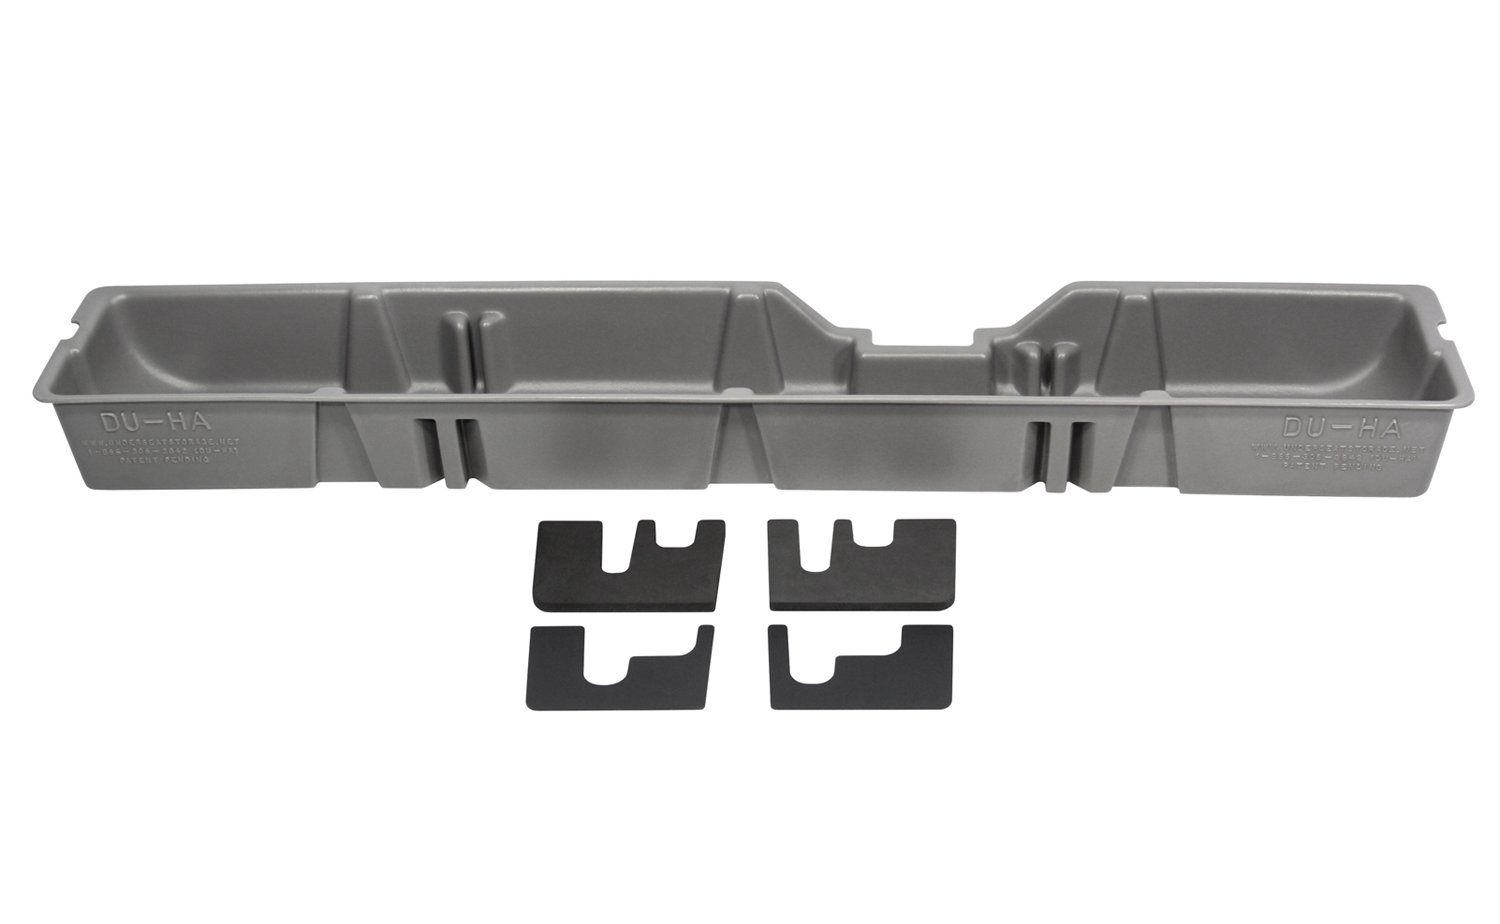 DU-HA Under Seat Storage Fits 09-10 Ford F-250 thru F-550 Super Duty Supercab, Gray, Part #20082 by DU-HA